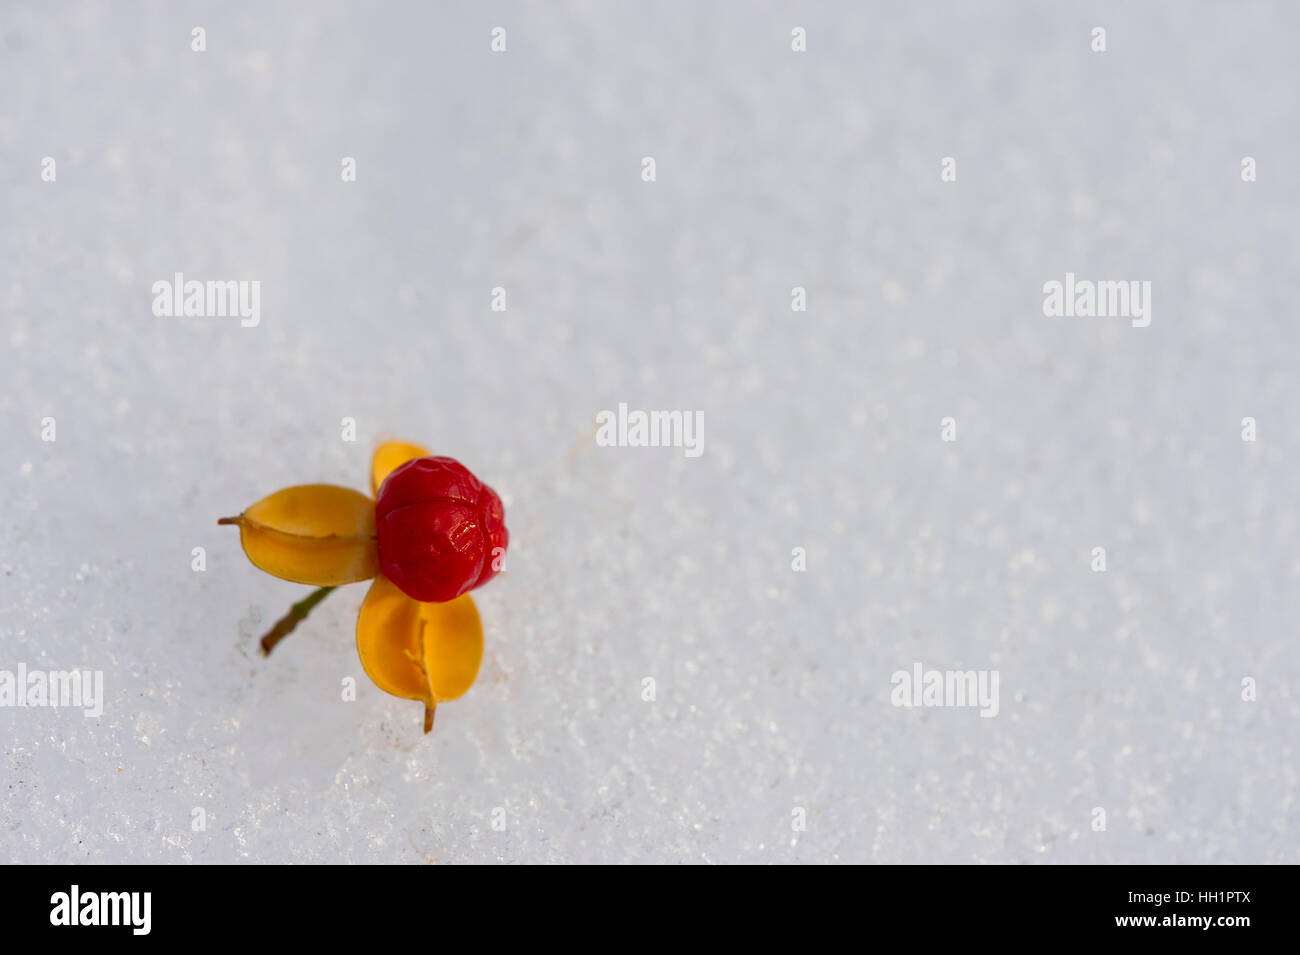 A red and yellow seed on freshly fallen snow. - Stock Image